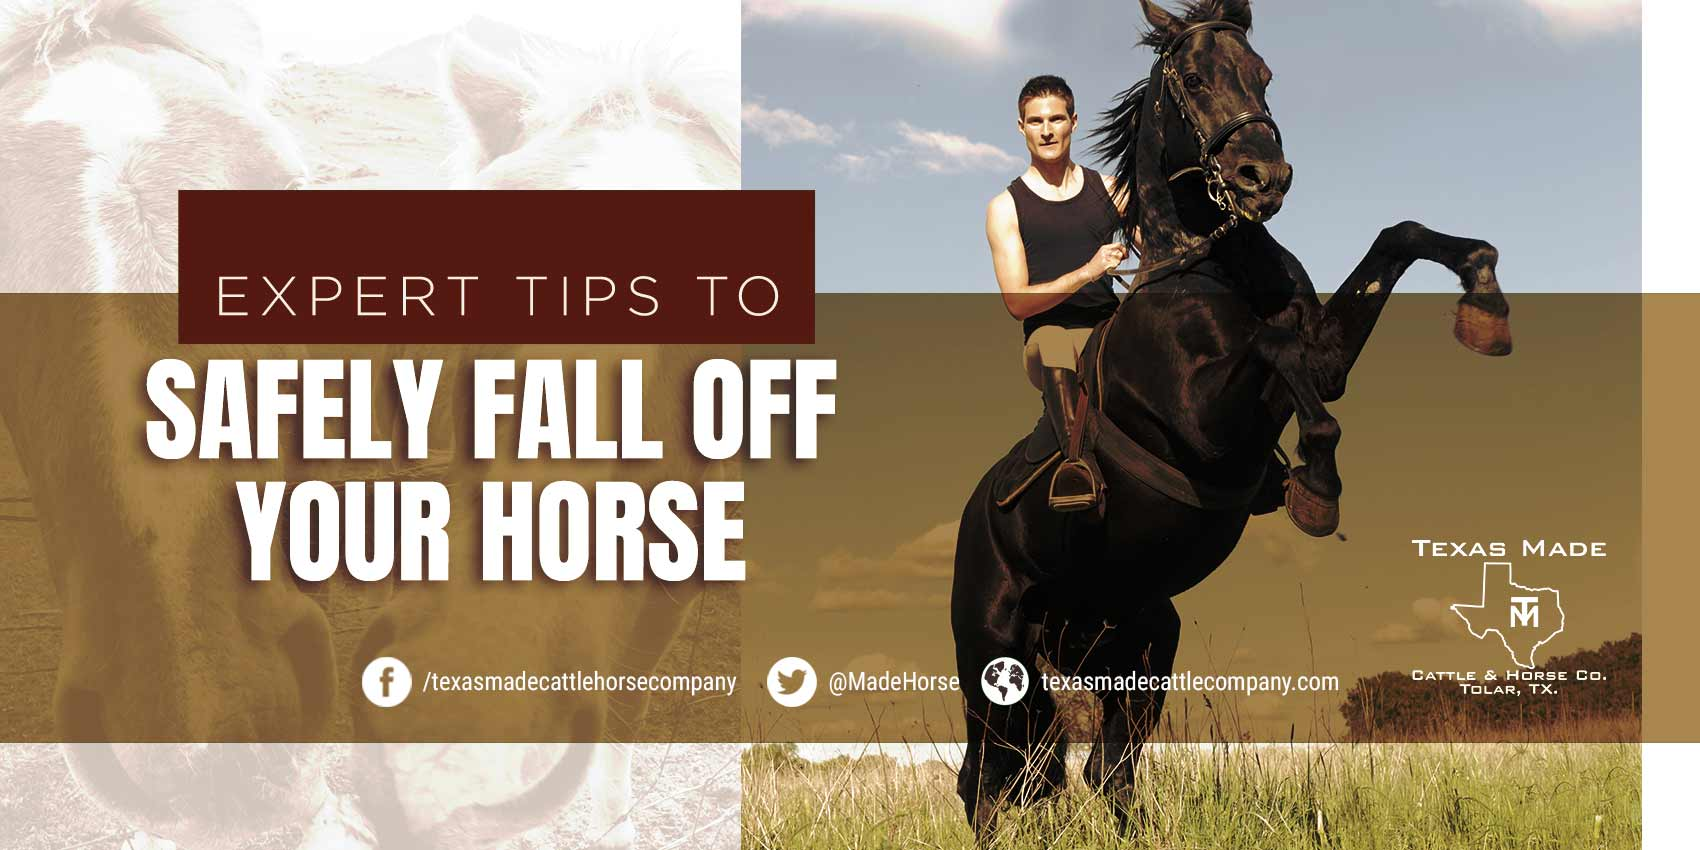 Expert Tips to Safely Fall Off Your Horse